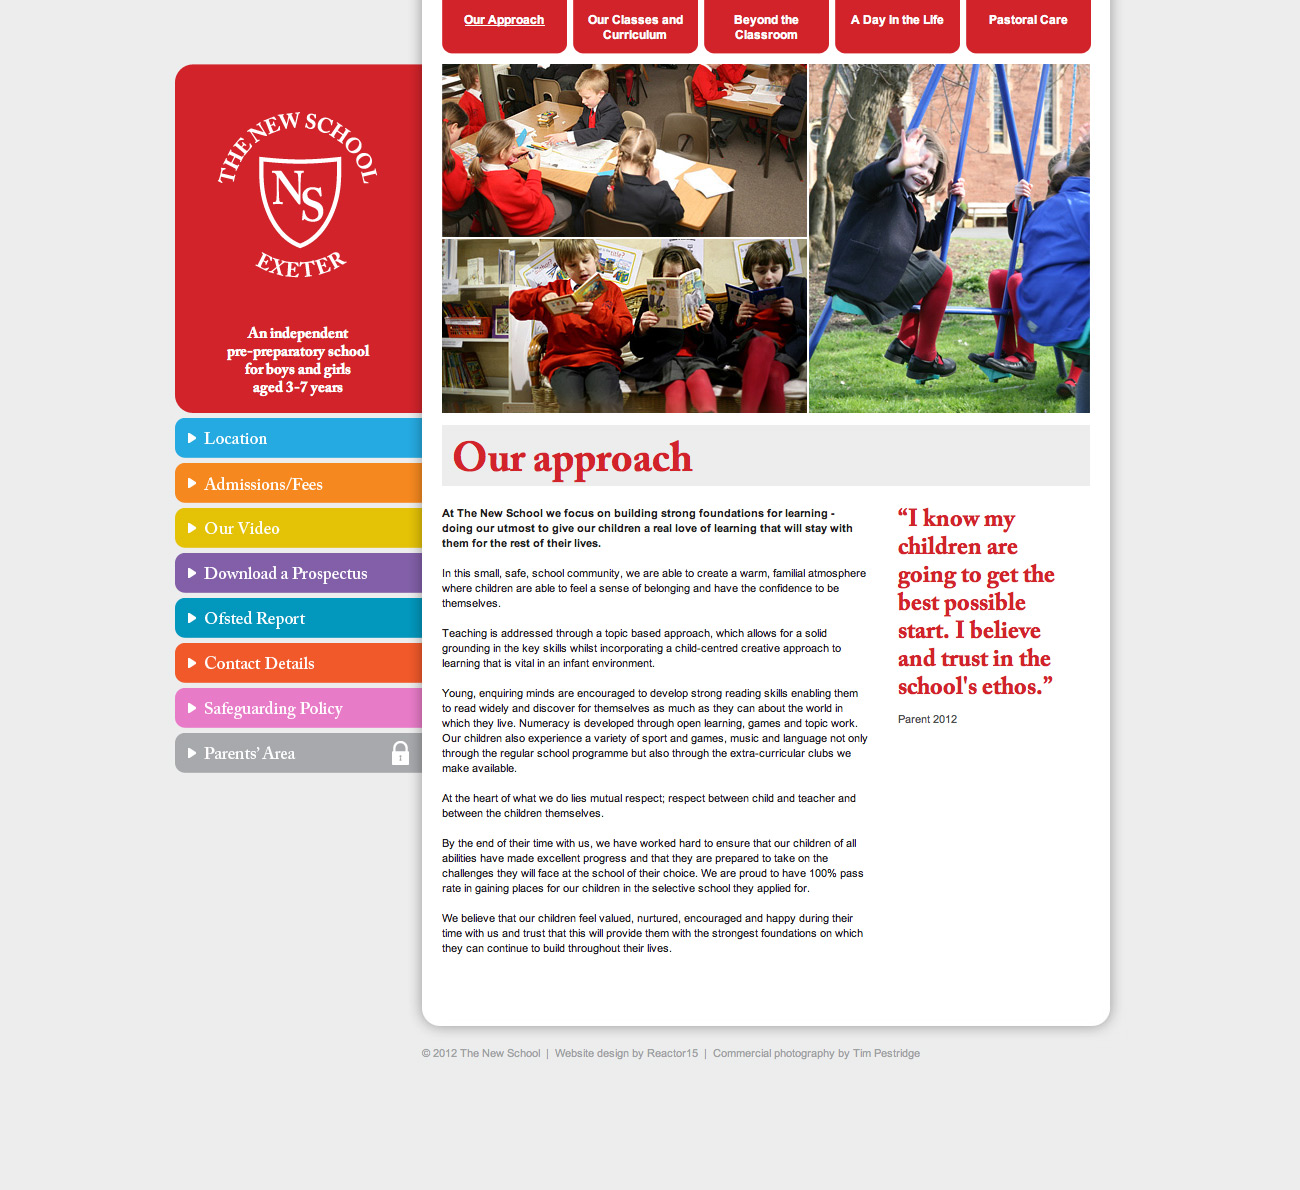 The New School Exeter Website Our Approach Page